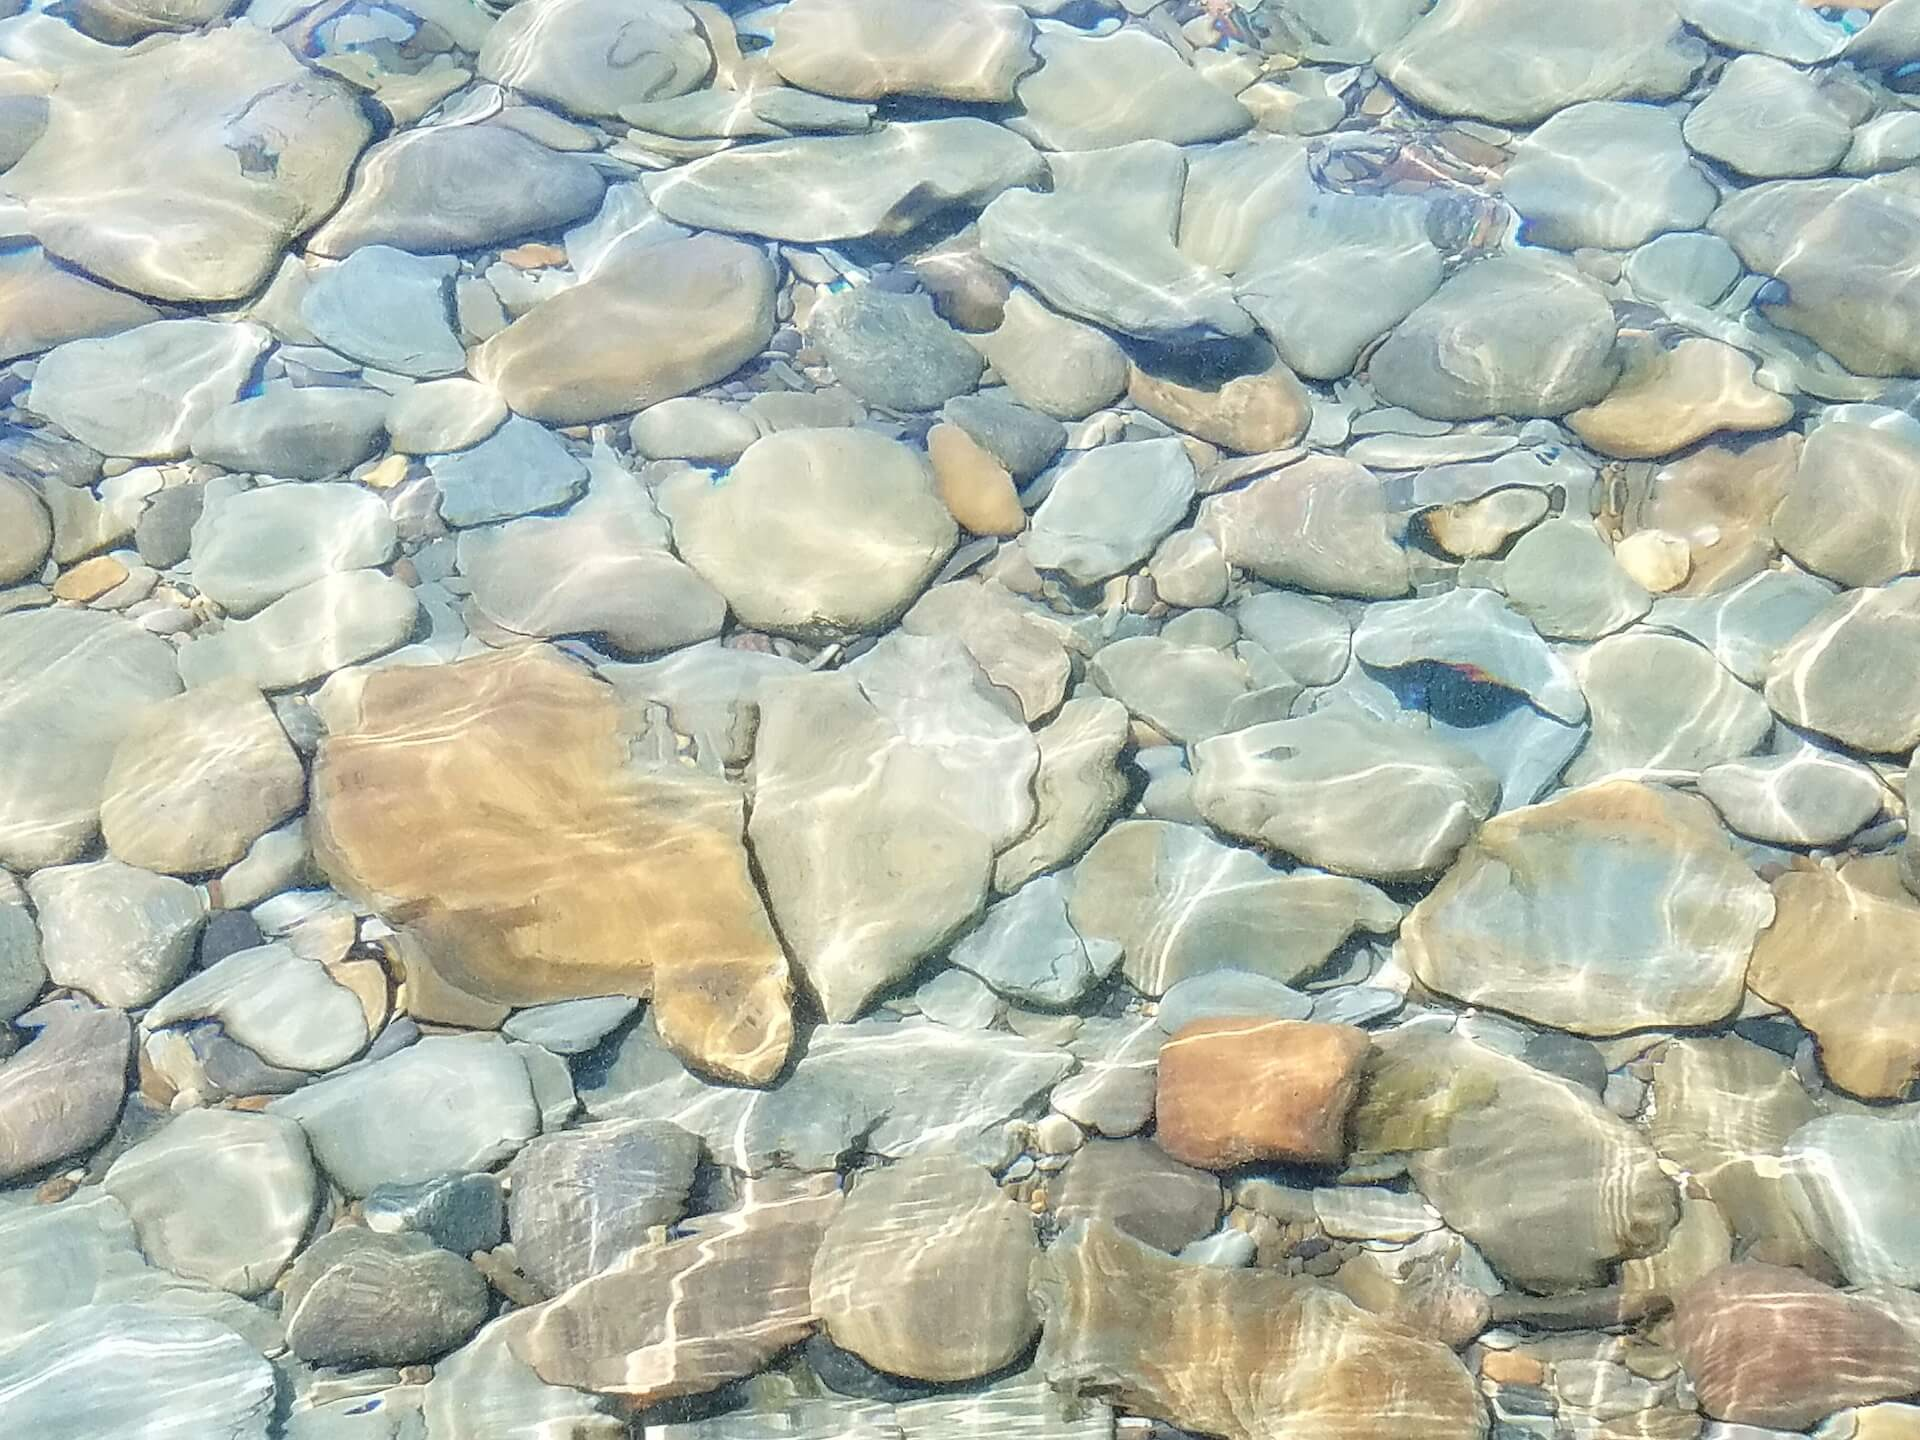 Rocks at the Bottom of a Lake